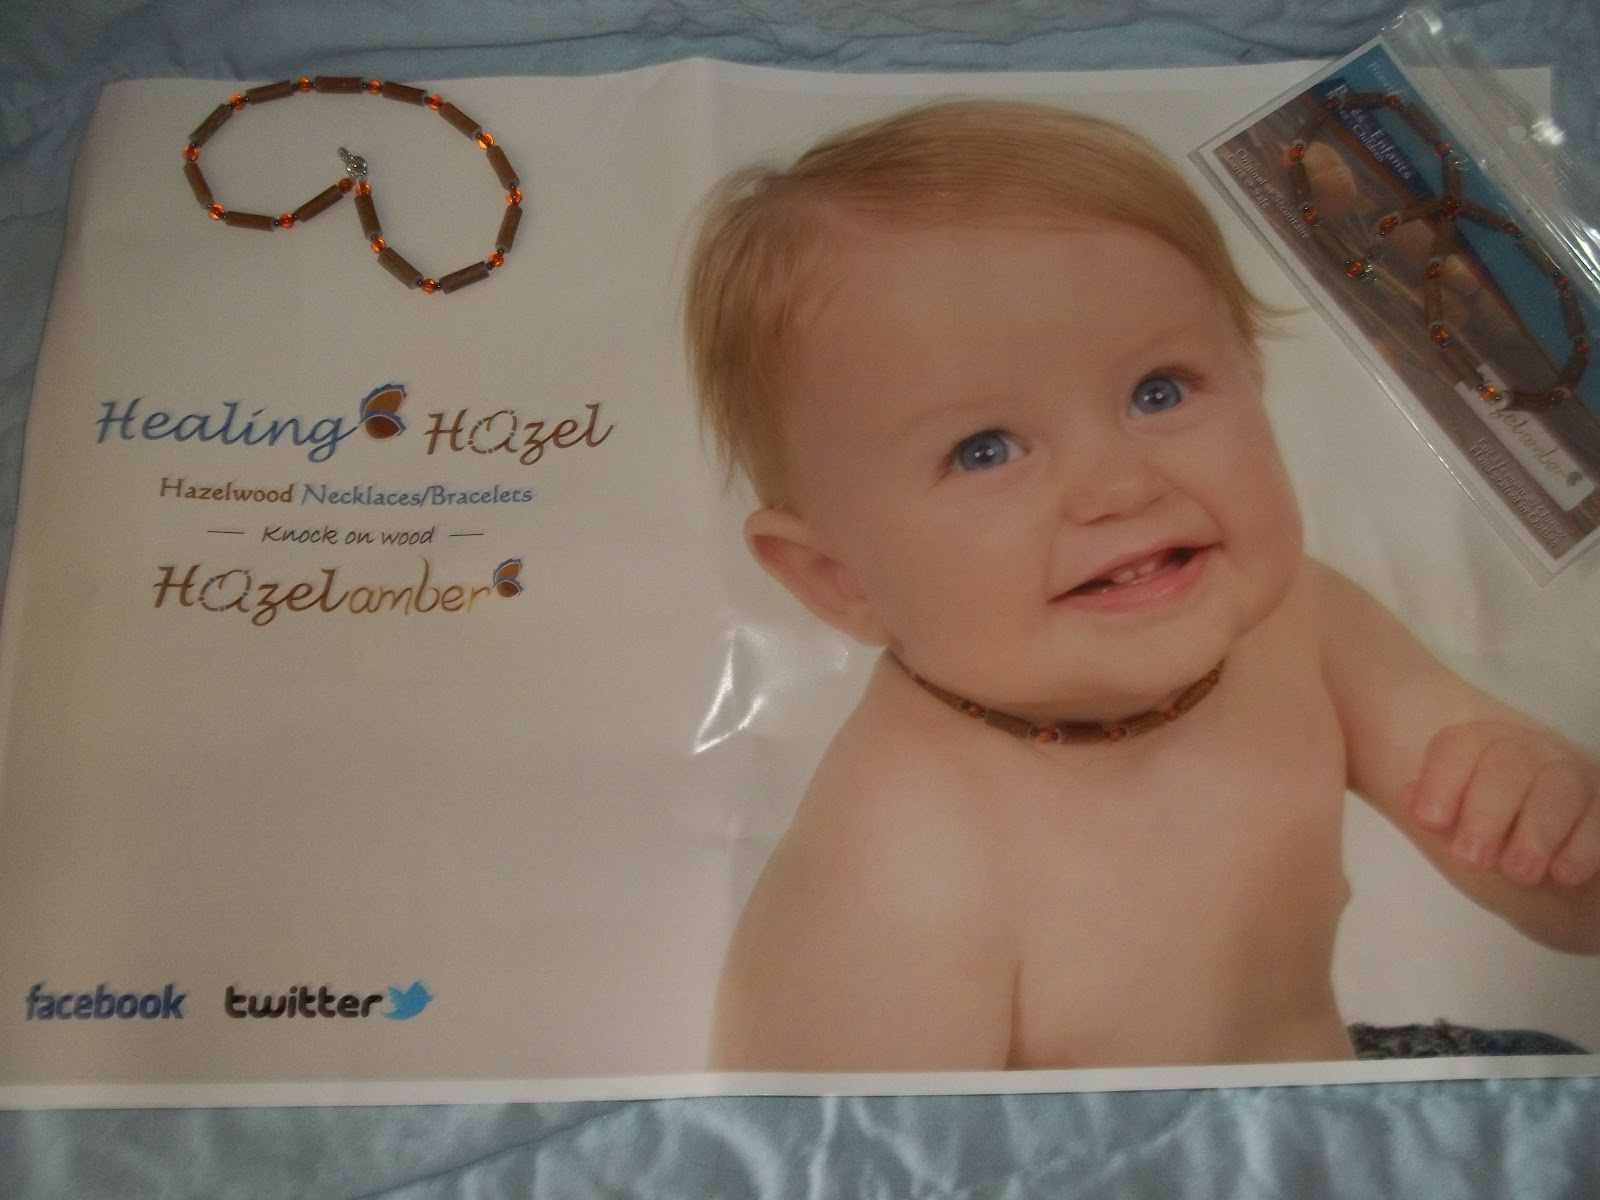 Mommyknowz Hazelamber Teething Necklace Review